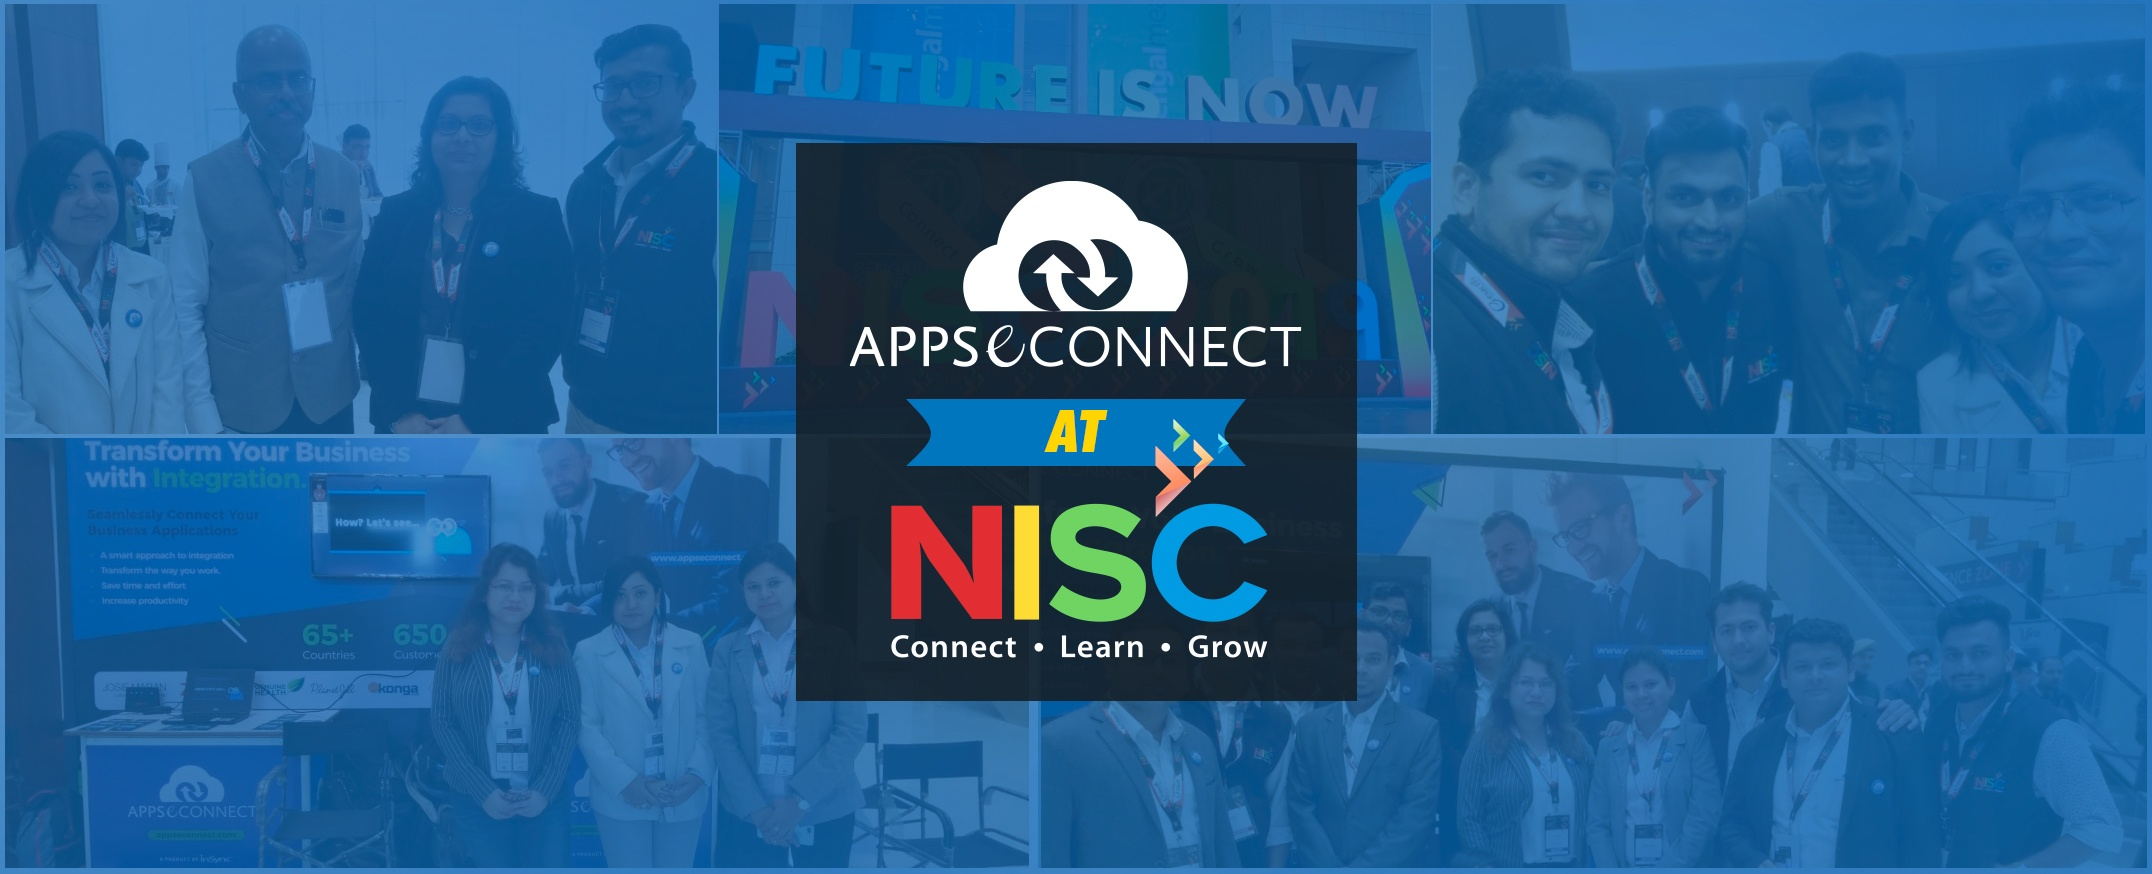 APPSeCONNECT-Exhibited-at-NASSCOM-International-SME-Conclave-2019